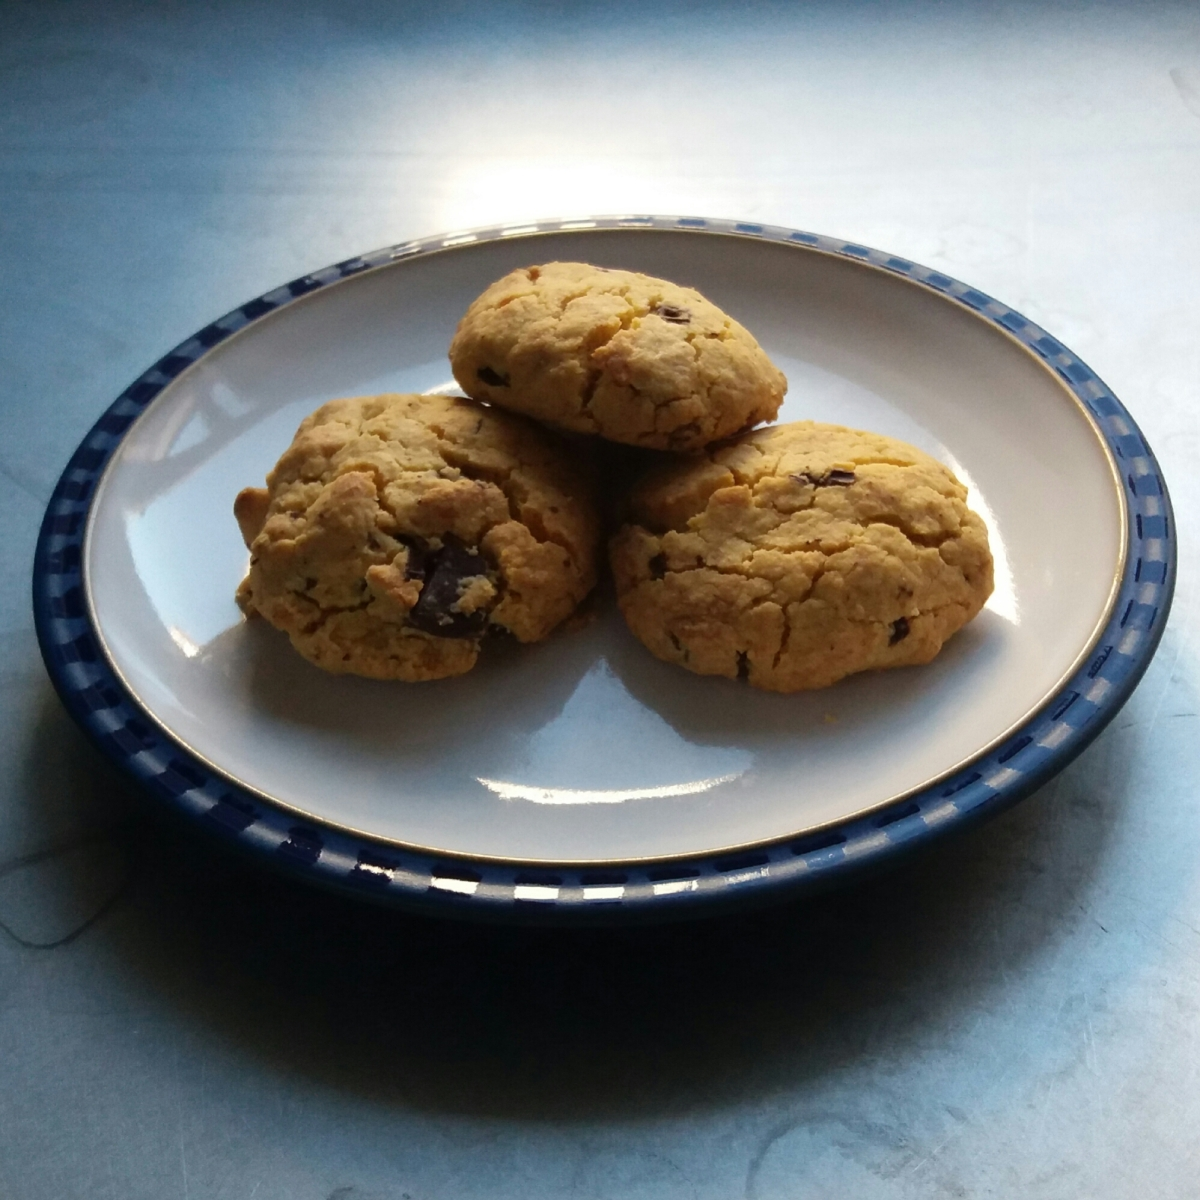 Peanut butter and Chocolate Cookies (Vegan, GF)